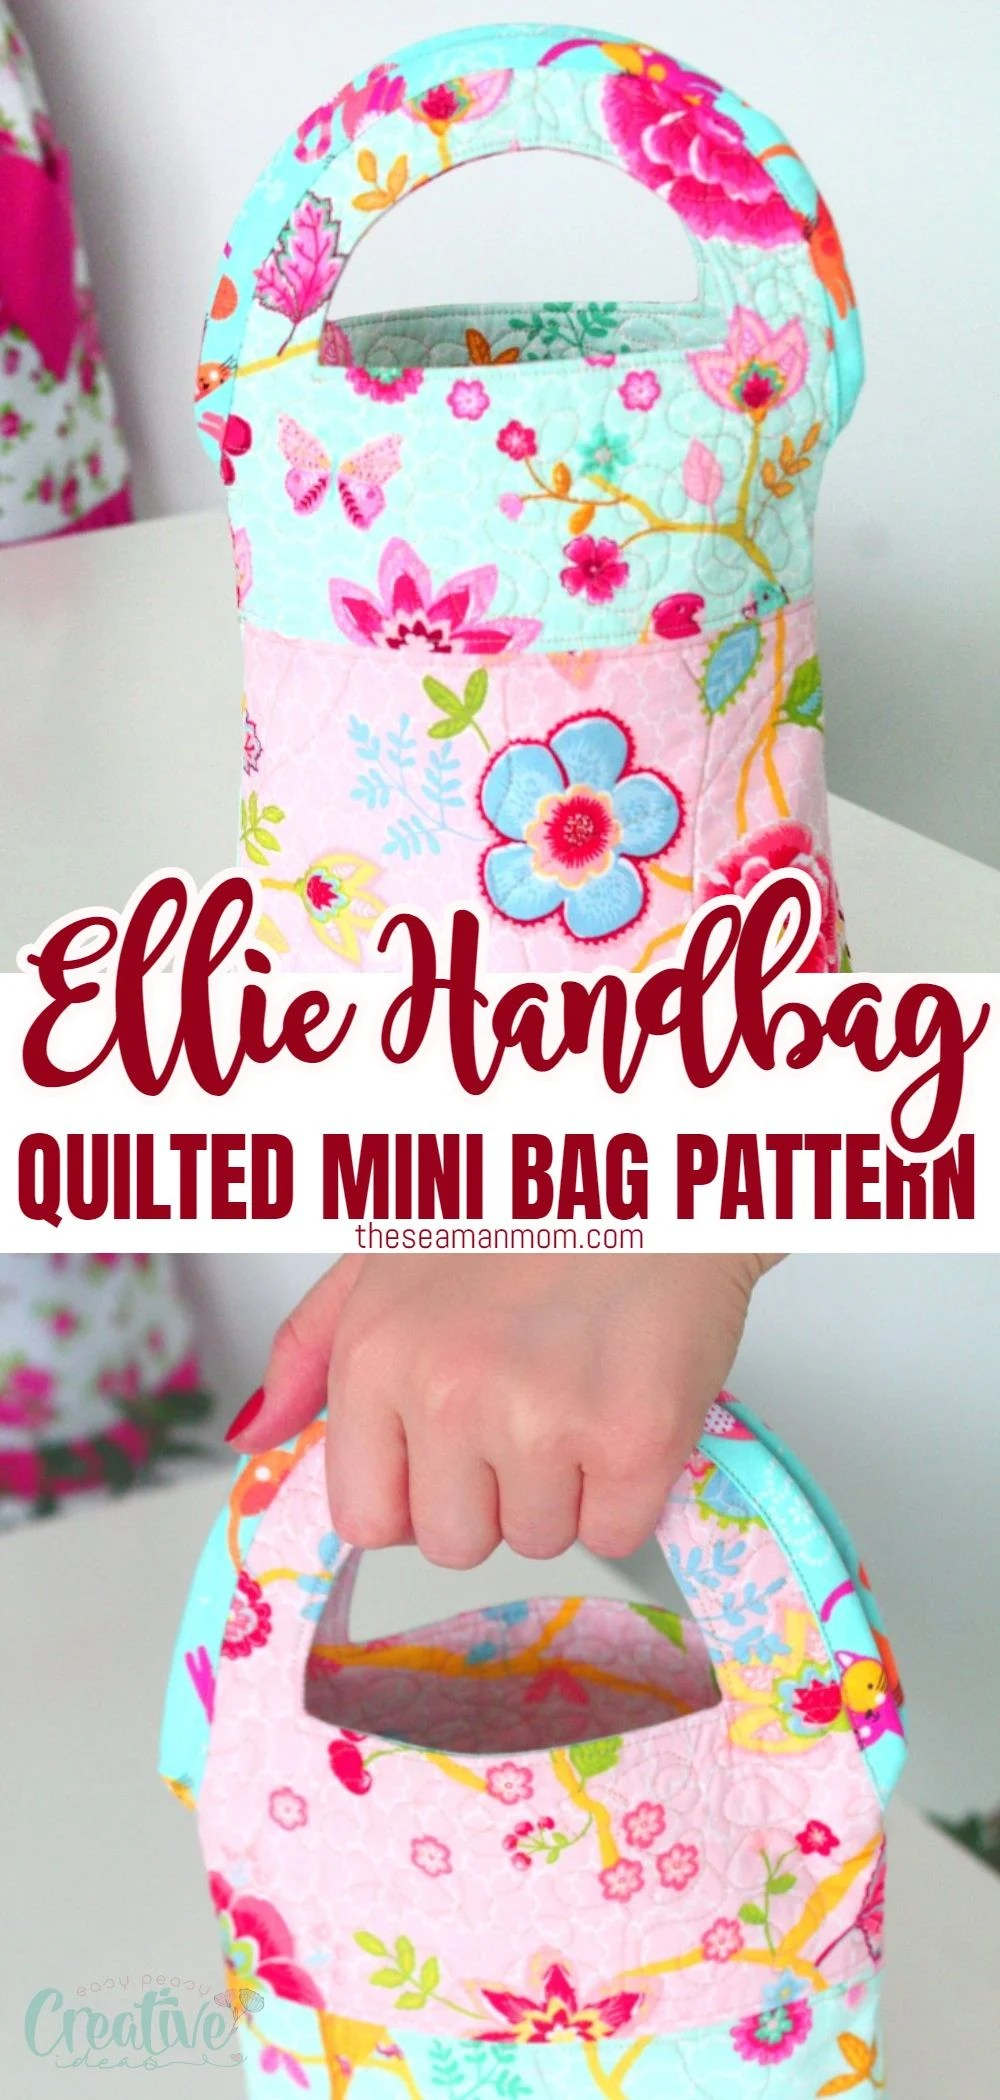 This quilted handbag is another quick and easy beginner project, especially if you plan on taking up quilting and didn't have the courage to do so yet. Great project for beginner quilters! via @petroneagu